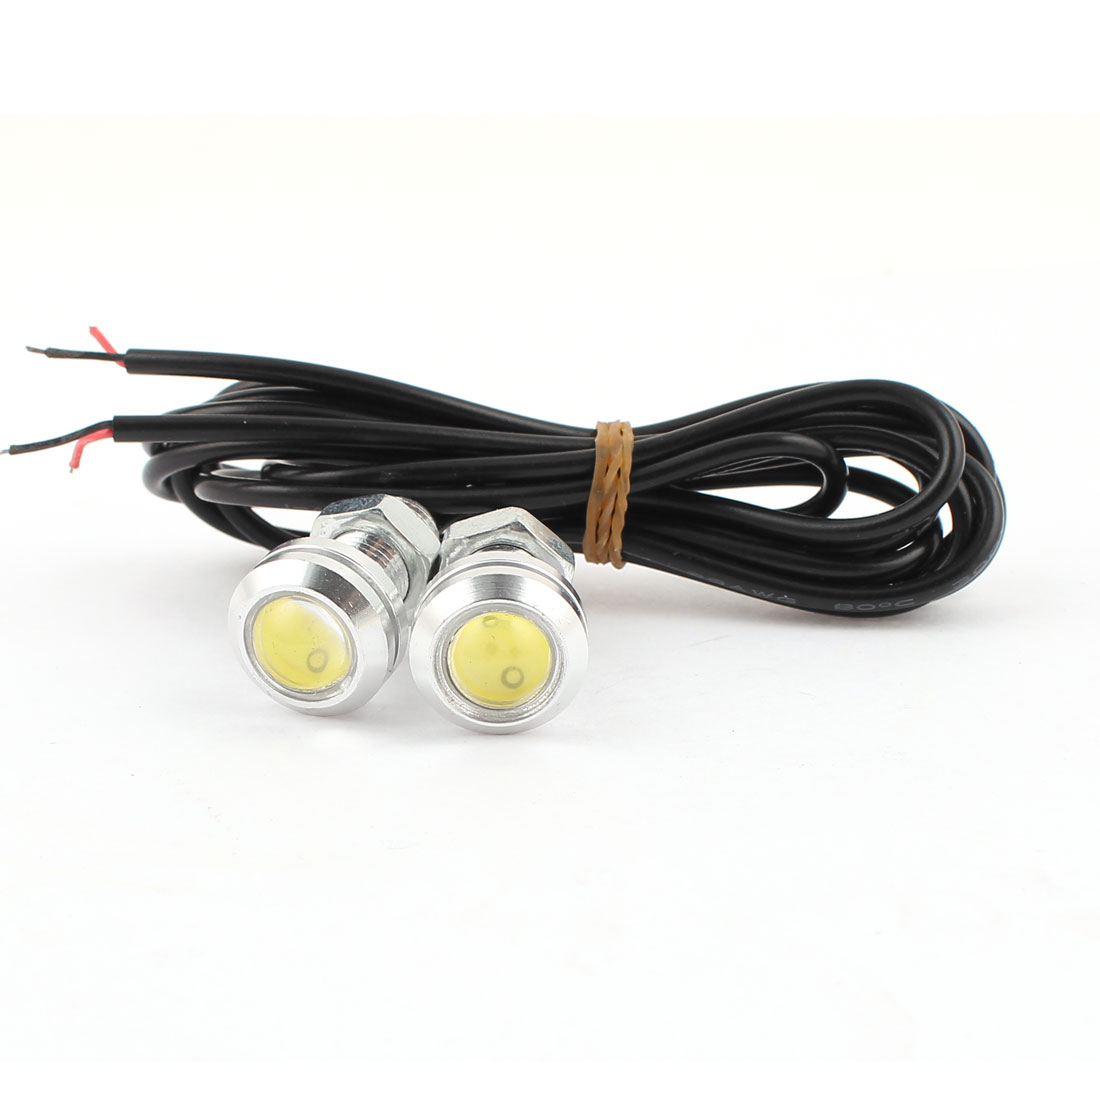 2 Pcs Thread Mounting COB Eagle Eye White Light Fog Daytime Running Tail Sidelight Lamp